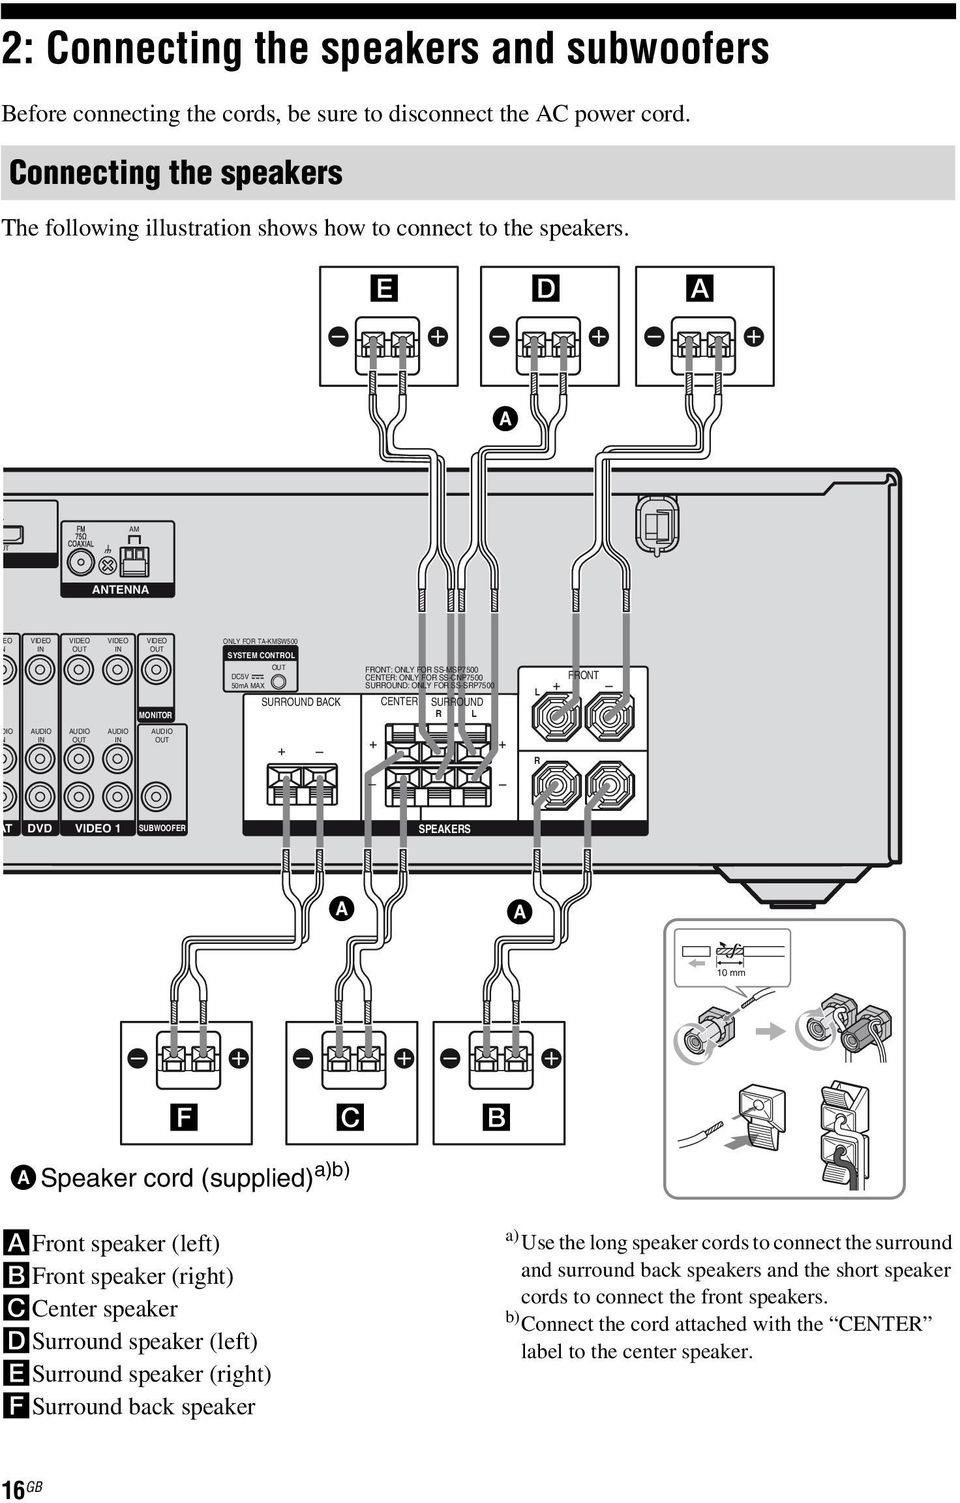 1 Home Theatre System Operating Instructions Ht Ddw Sony Connecting Pioneer Bdp 320 To Av Receiver Or Amplifier Cable Harness Diagram Ss Cnp7500 Surround Only For Srp7500 Center R L Front Dio N